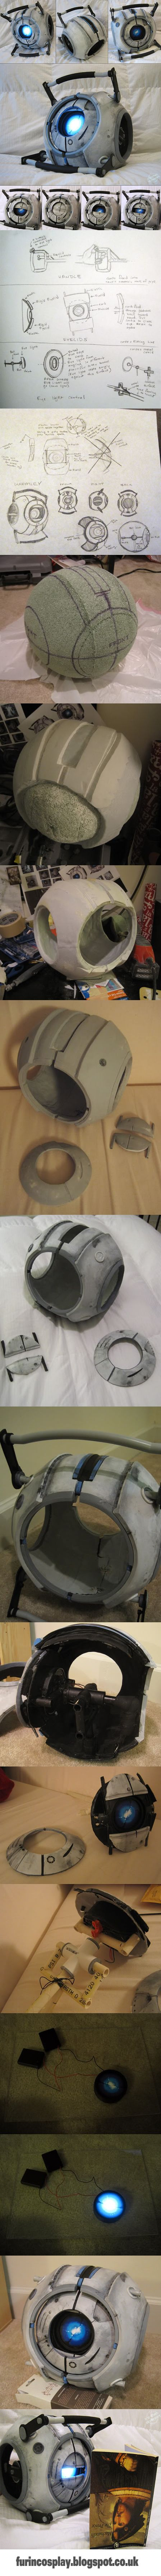 Wheatley from the video game Portal. Creative geek. Found at; http://furincosplay.blogspot.co.uk/2011/07/wheatley.html Image created for Pinterest by http://fps-x-games.com. #wheatley #portal #videogame http://xboxpsp.com/ppost/475481673141274536/